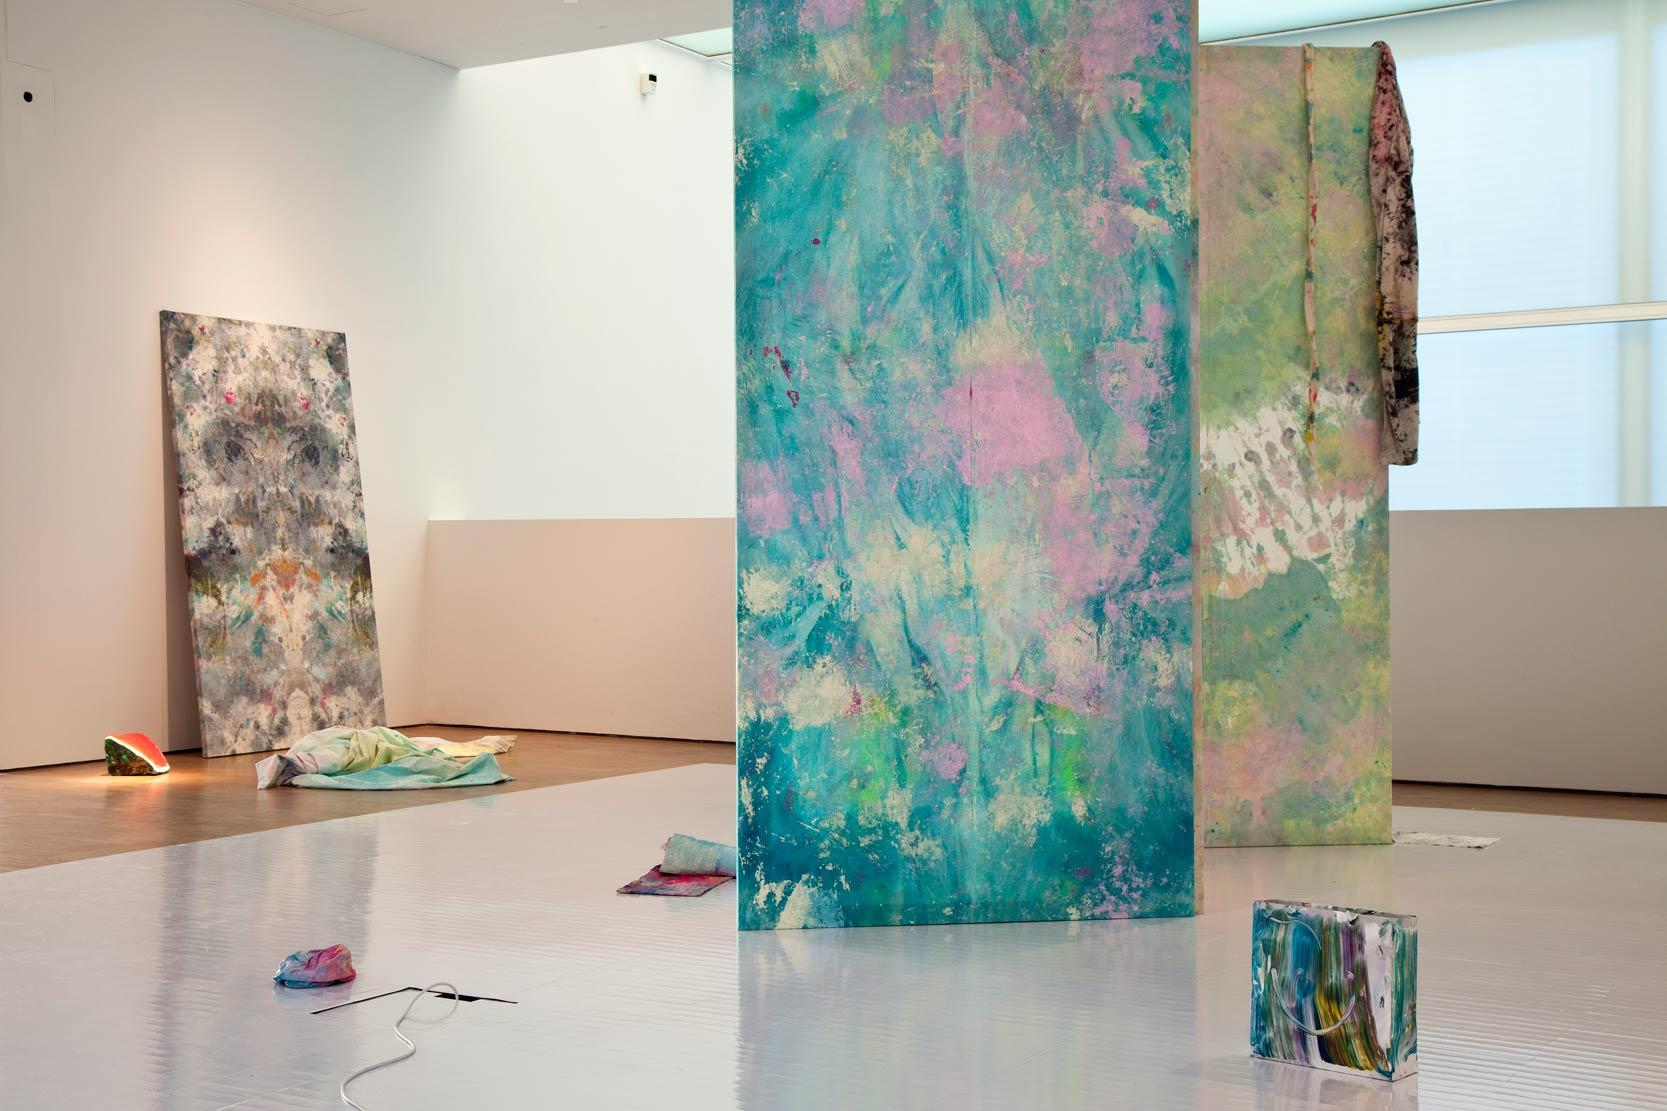 Blue Lagoon exhibition view/ Blue Lagoon. 2014 Acrylic and oil on various objects, white floor/ Photo by Anu Vahtra